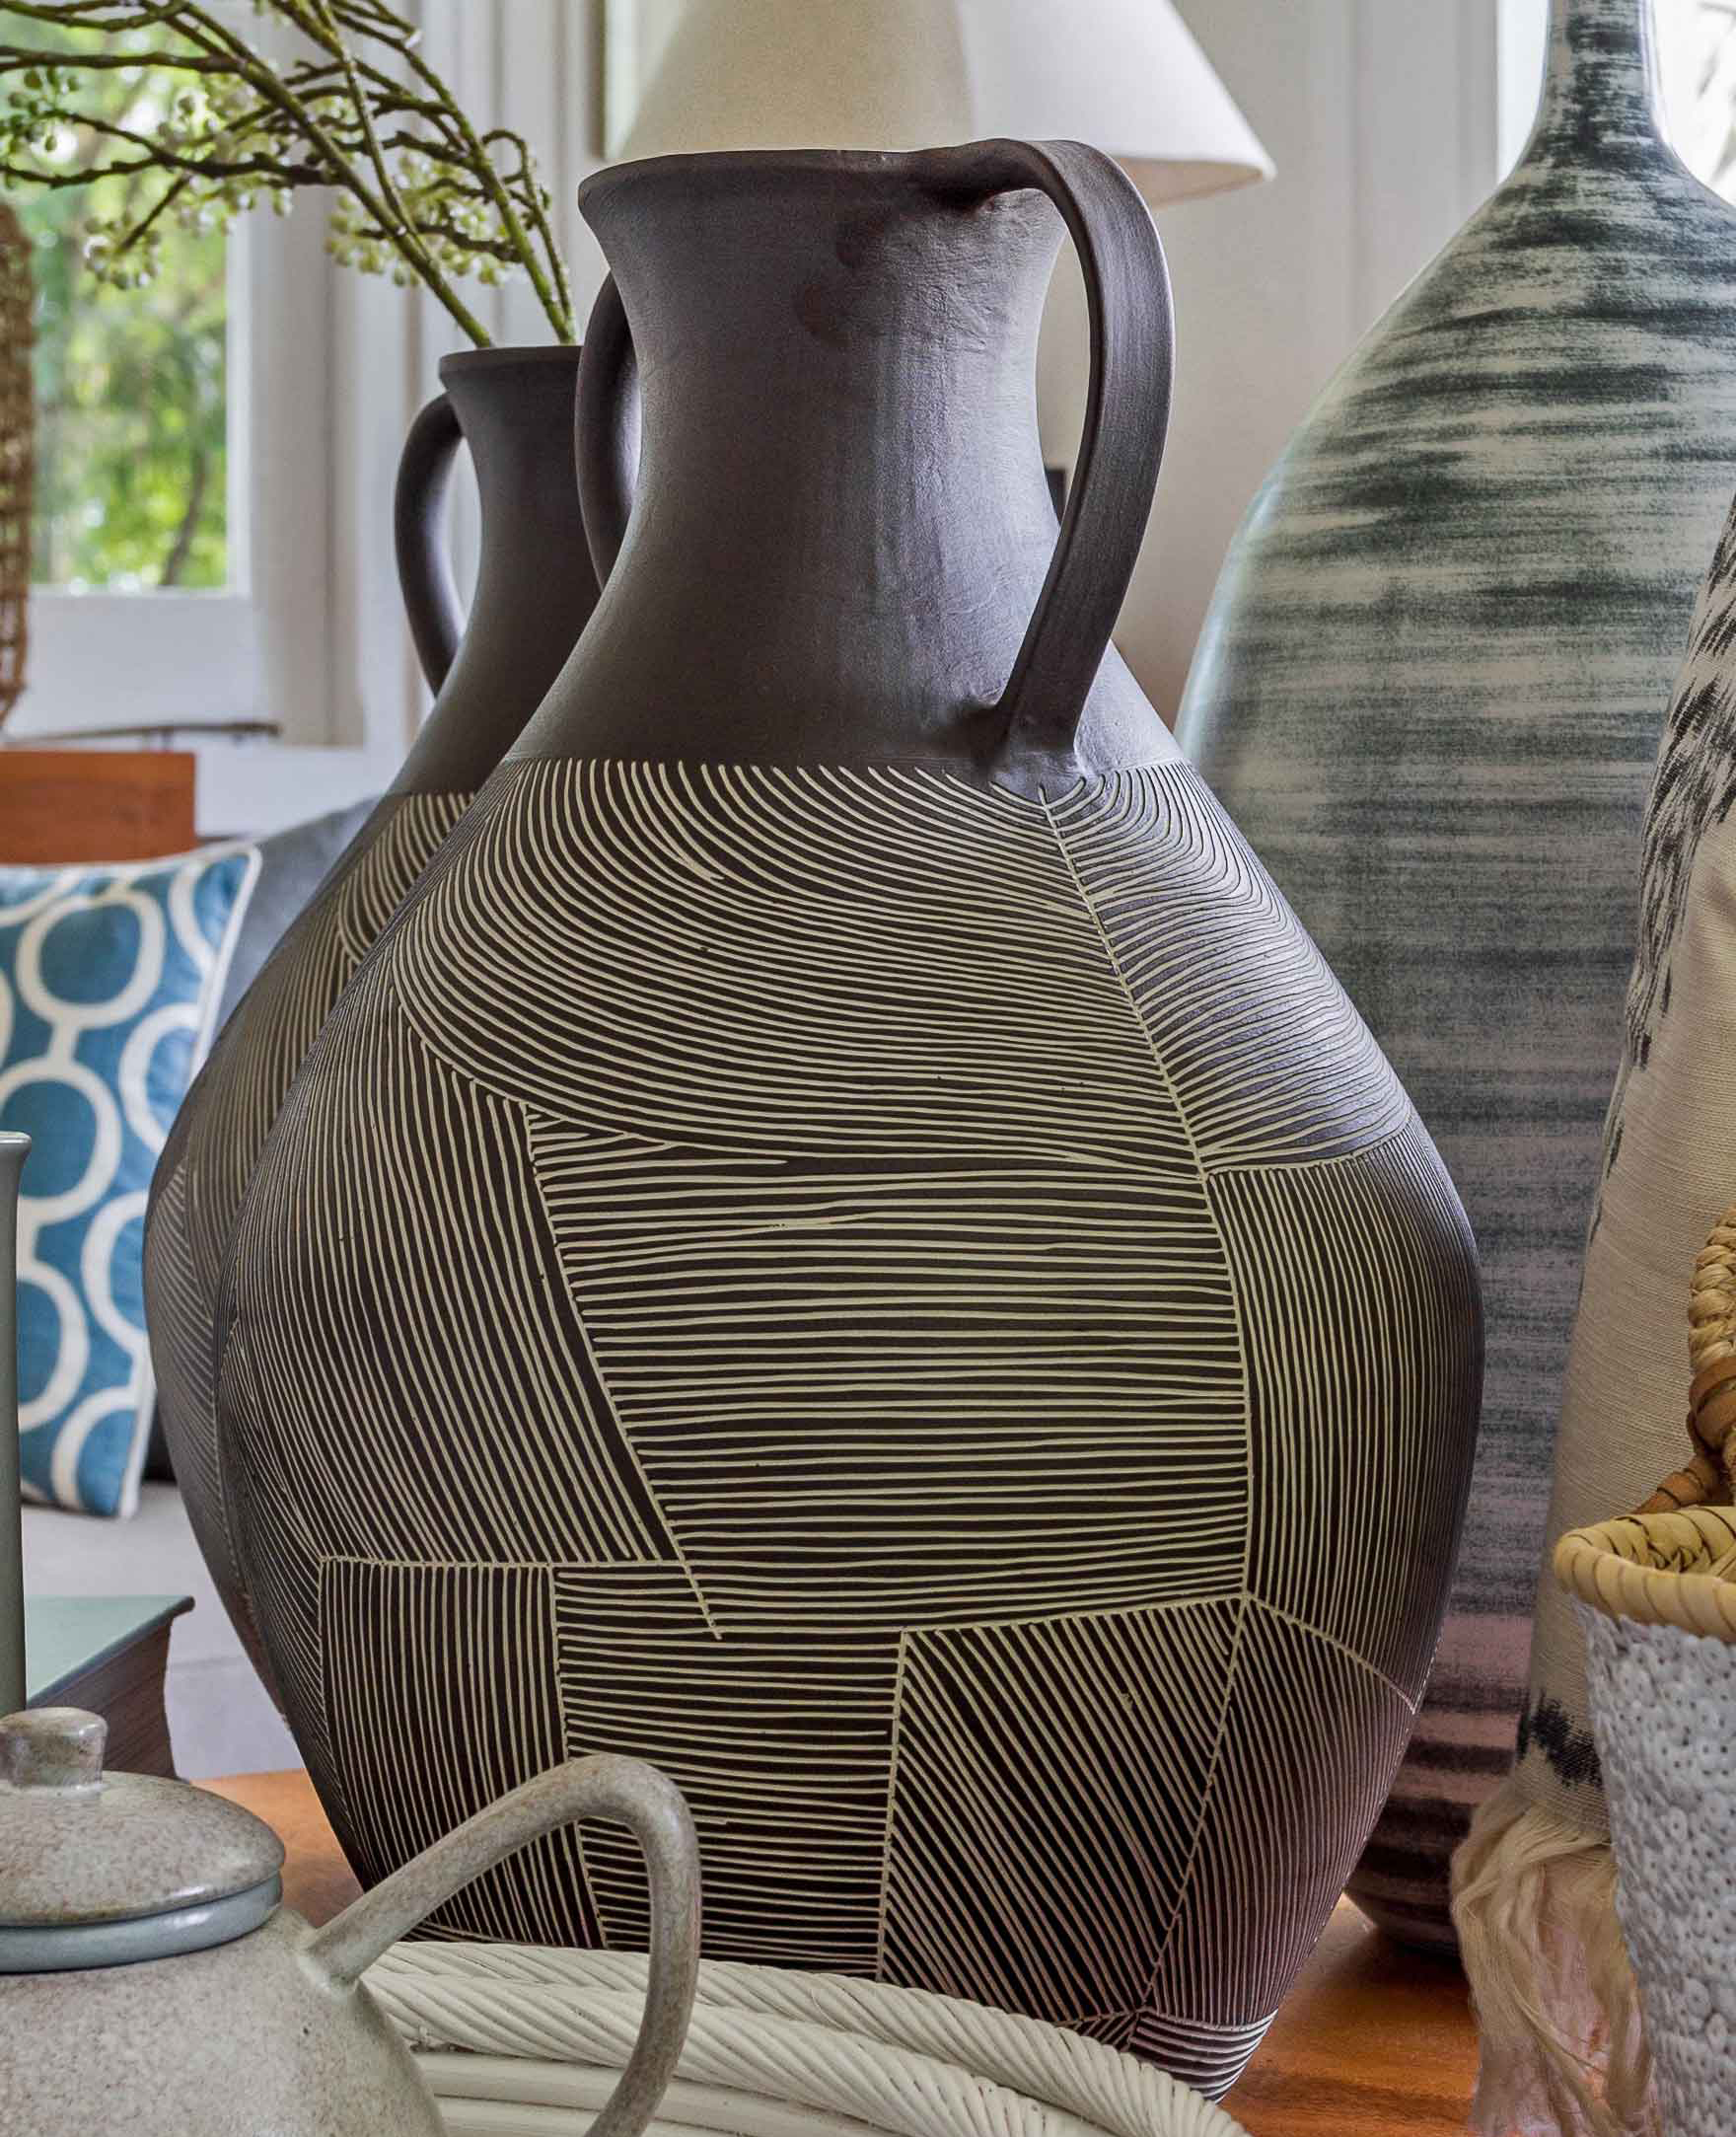 Beautiful Vase - Designed and made entirely by hand on the island of Bali using a combination of traditional and modern techniques, these beautiful vases have been made to last a lifetime.